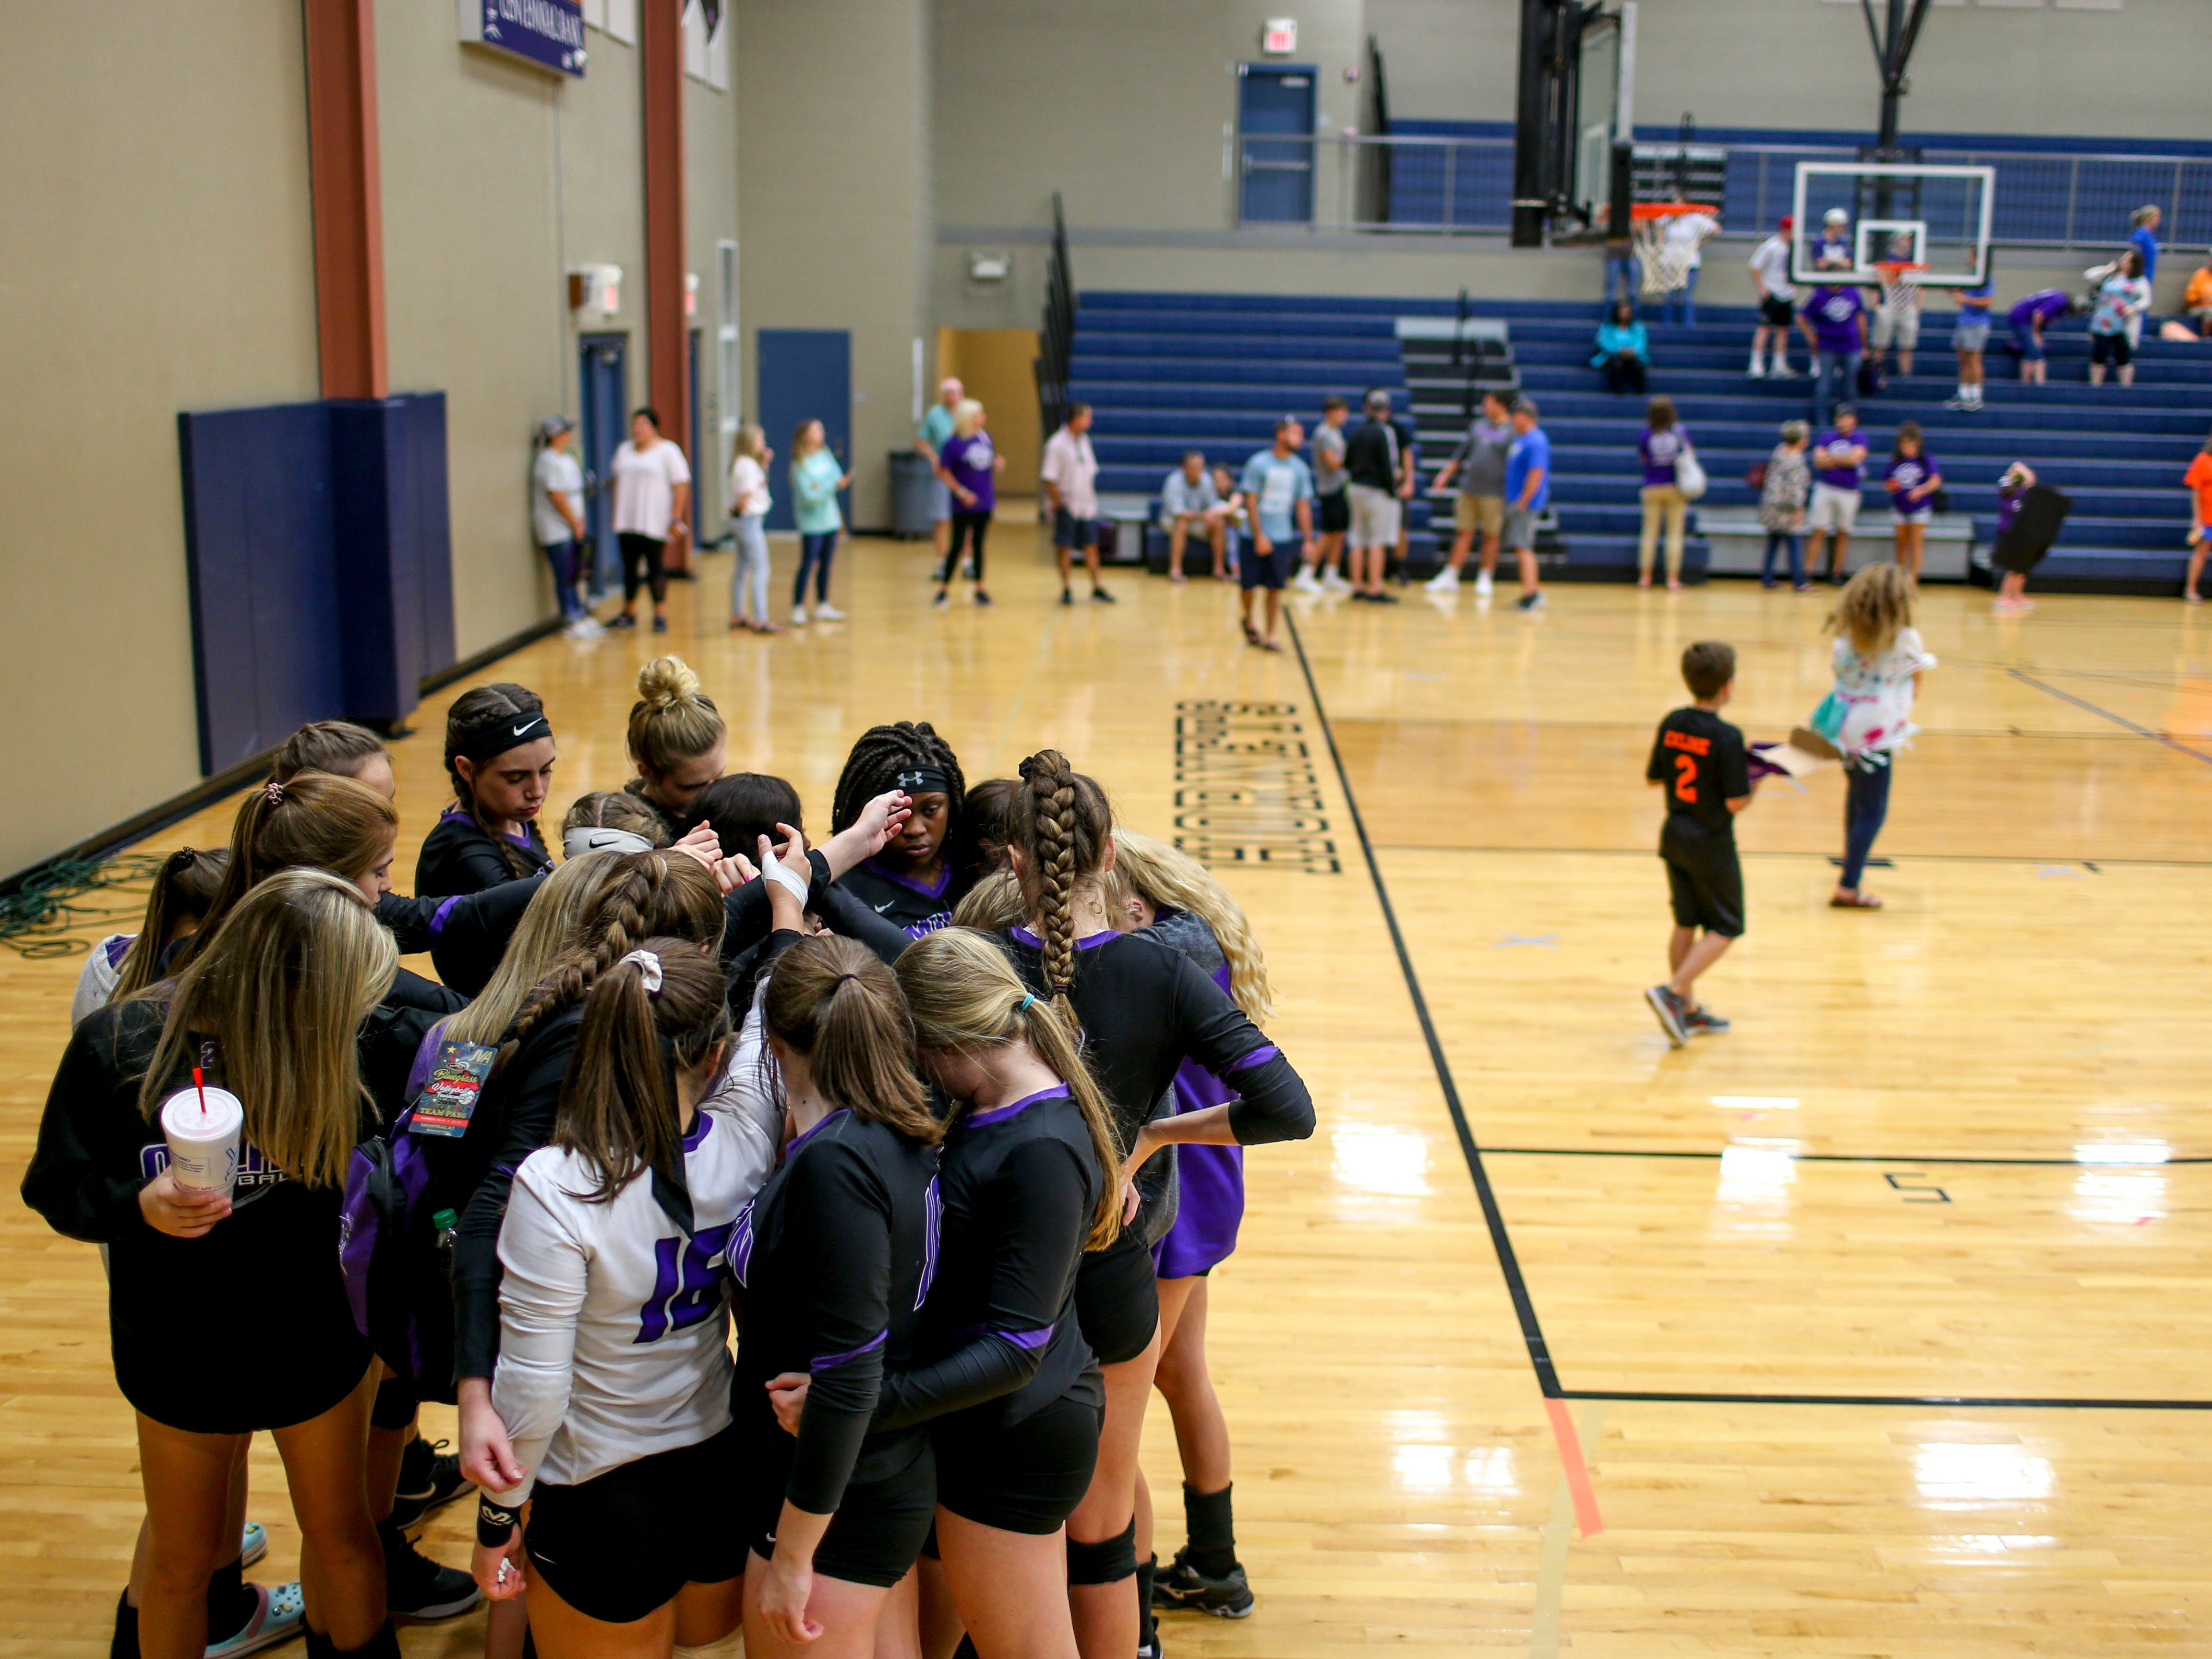 Bailee Graves (16) puts her arm into the mix of players during a huddle before a TSSAA volleyball game between Milan High School and South Gibson County at South Gibson County High School in Medina, Tenn., on Thursday, Sept. 13, 2018.